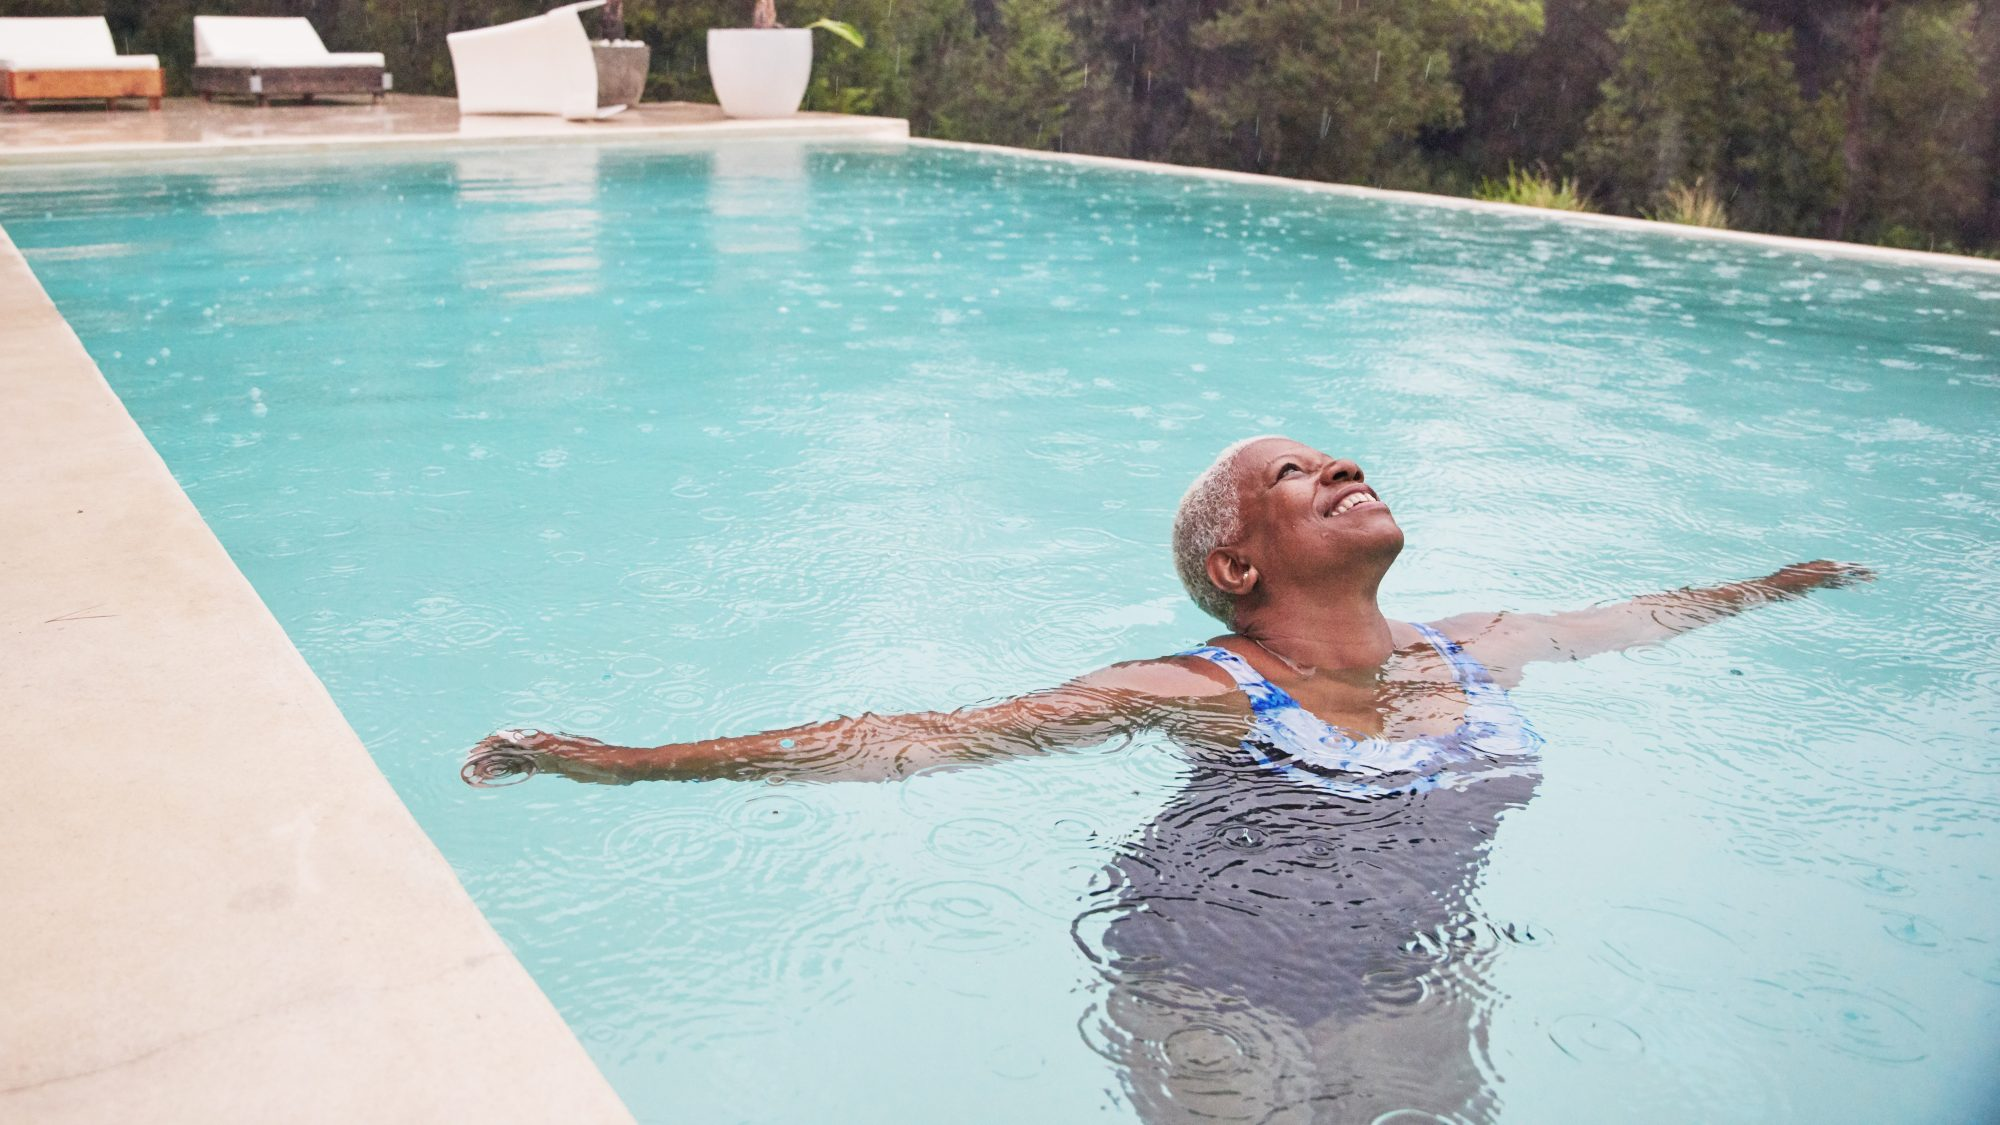 What Does Longevity Mean? How to Live a Longer, Happier, Healthier Life: A mature woman relaxes in a swimming pool o a rainy day